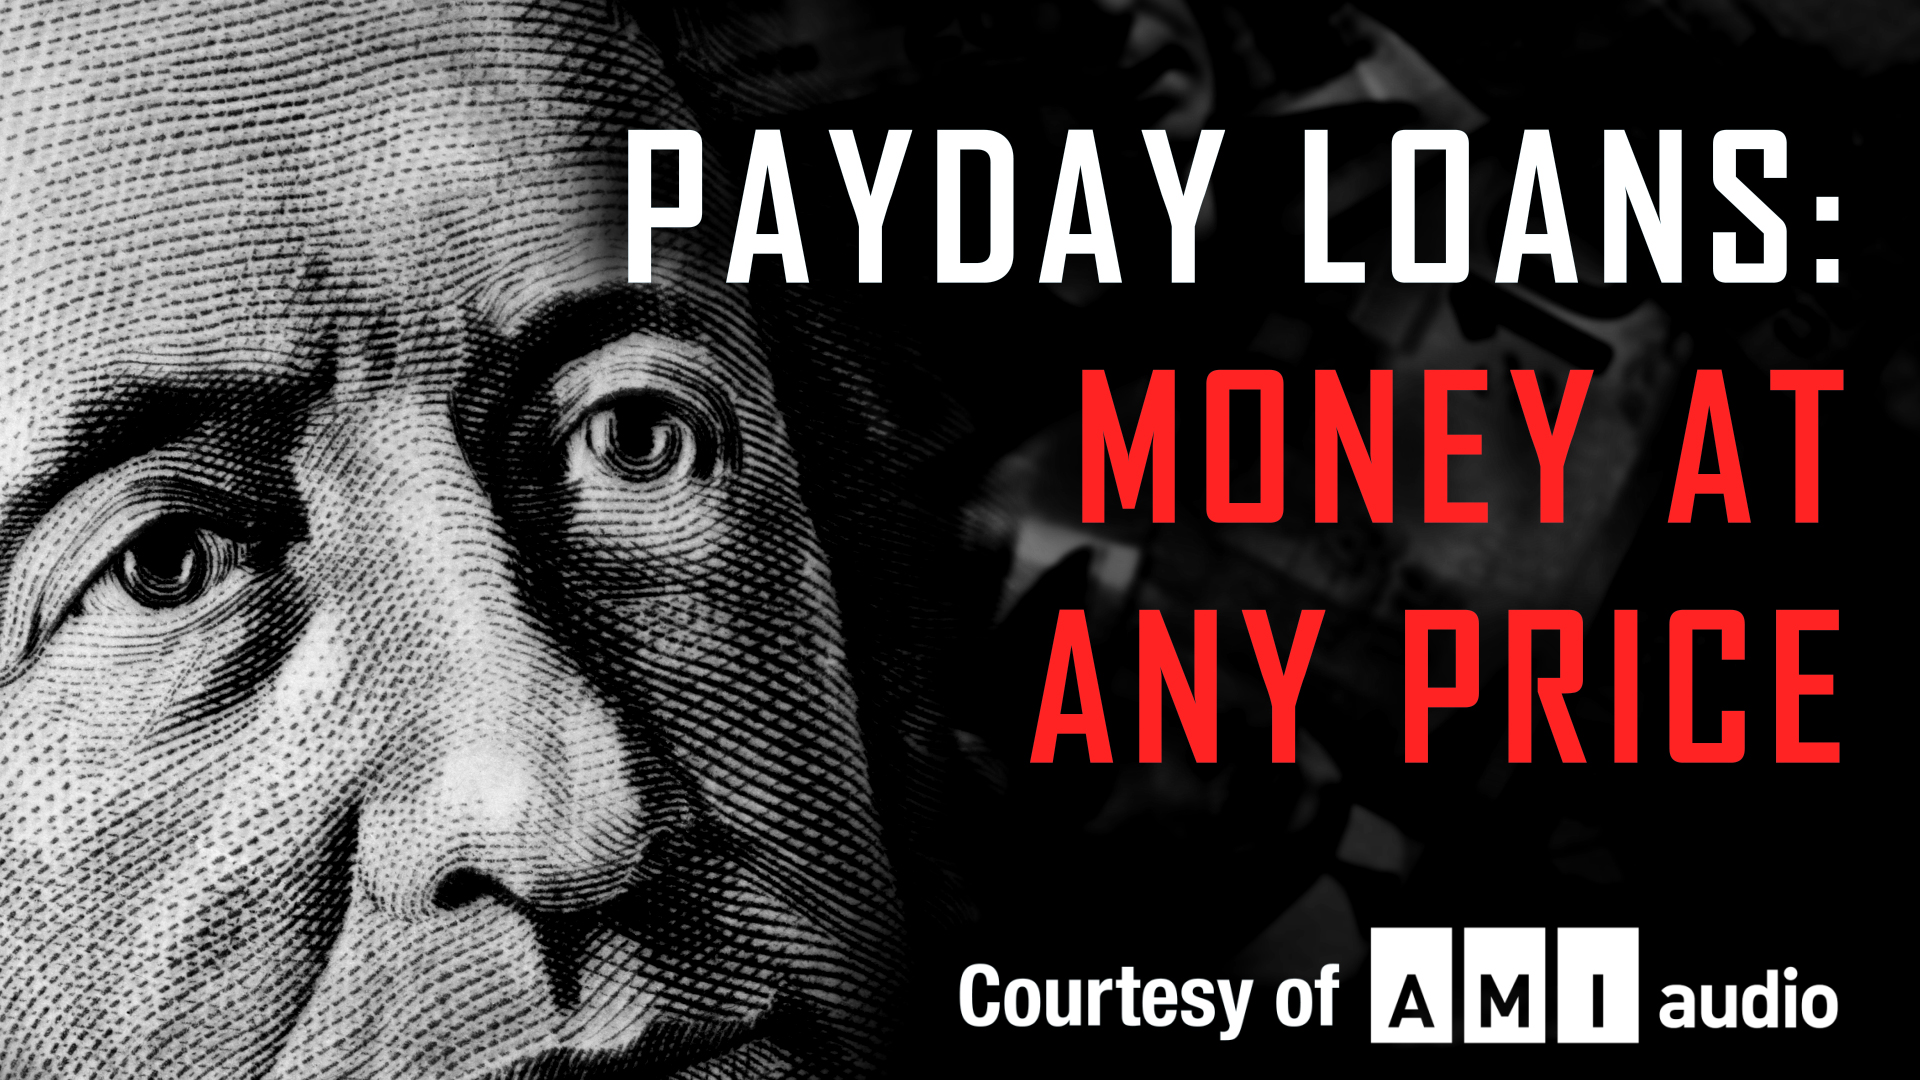 Image Reads: Payday Loans: Money at Any Price